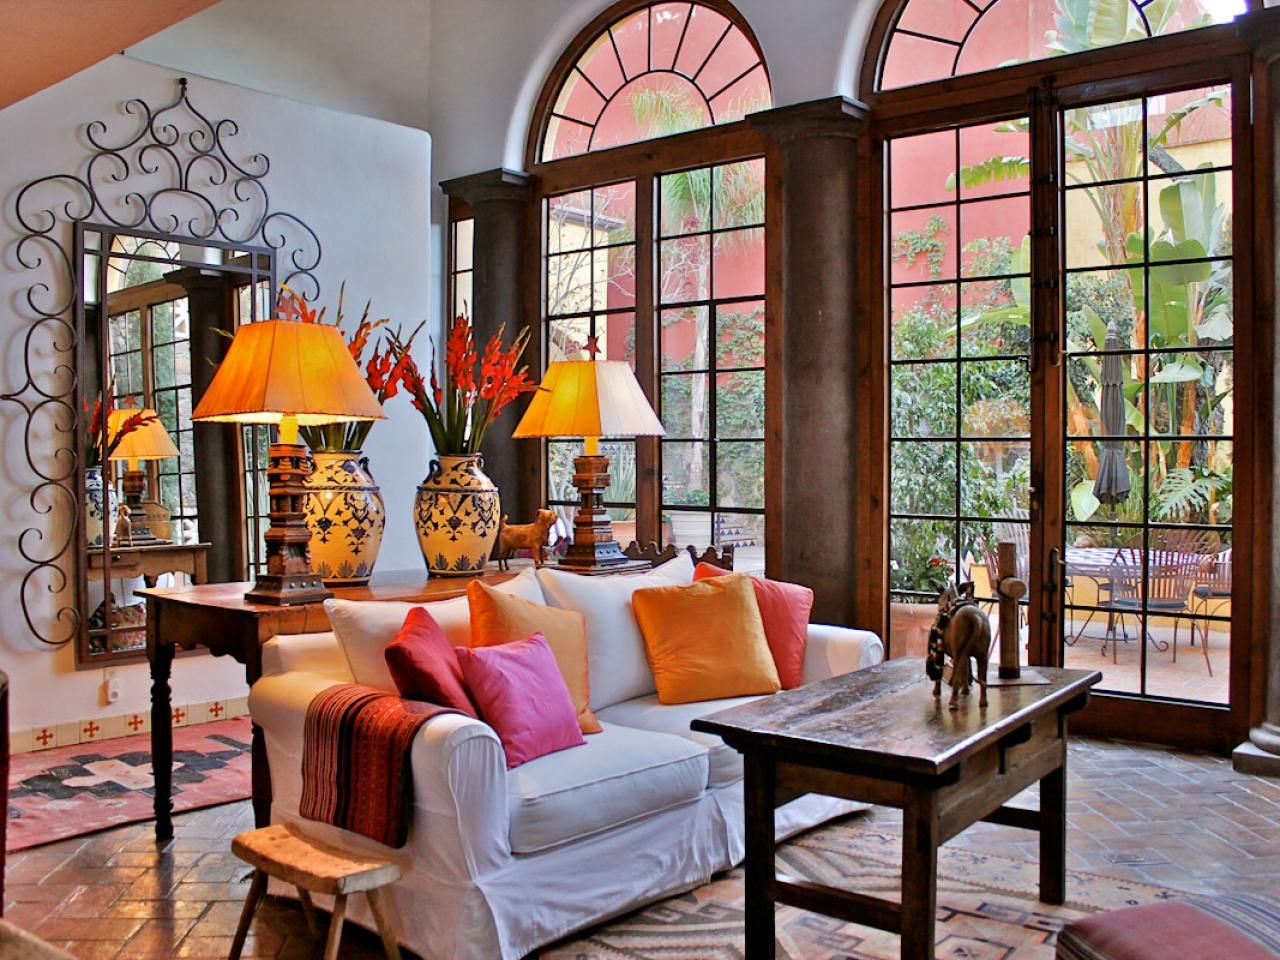 Spanish Living Room Design. 10 Spanish Inspired Rooms  Room interior design